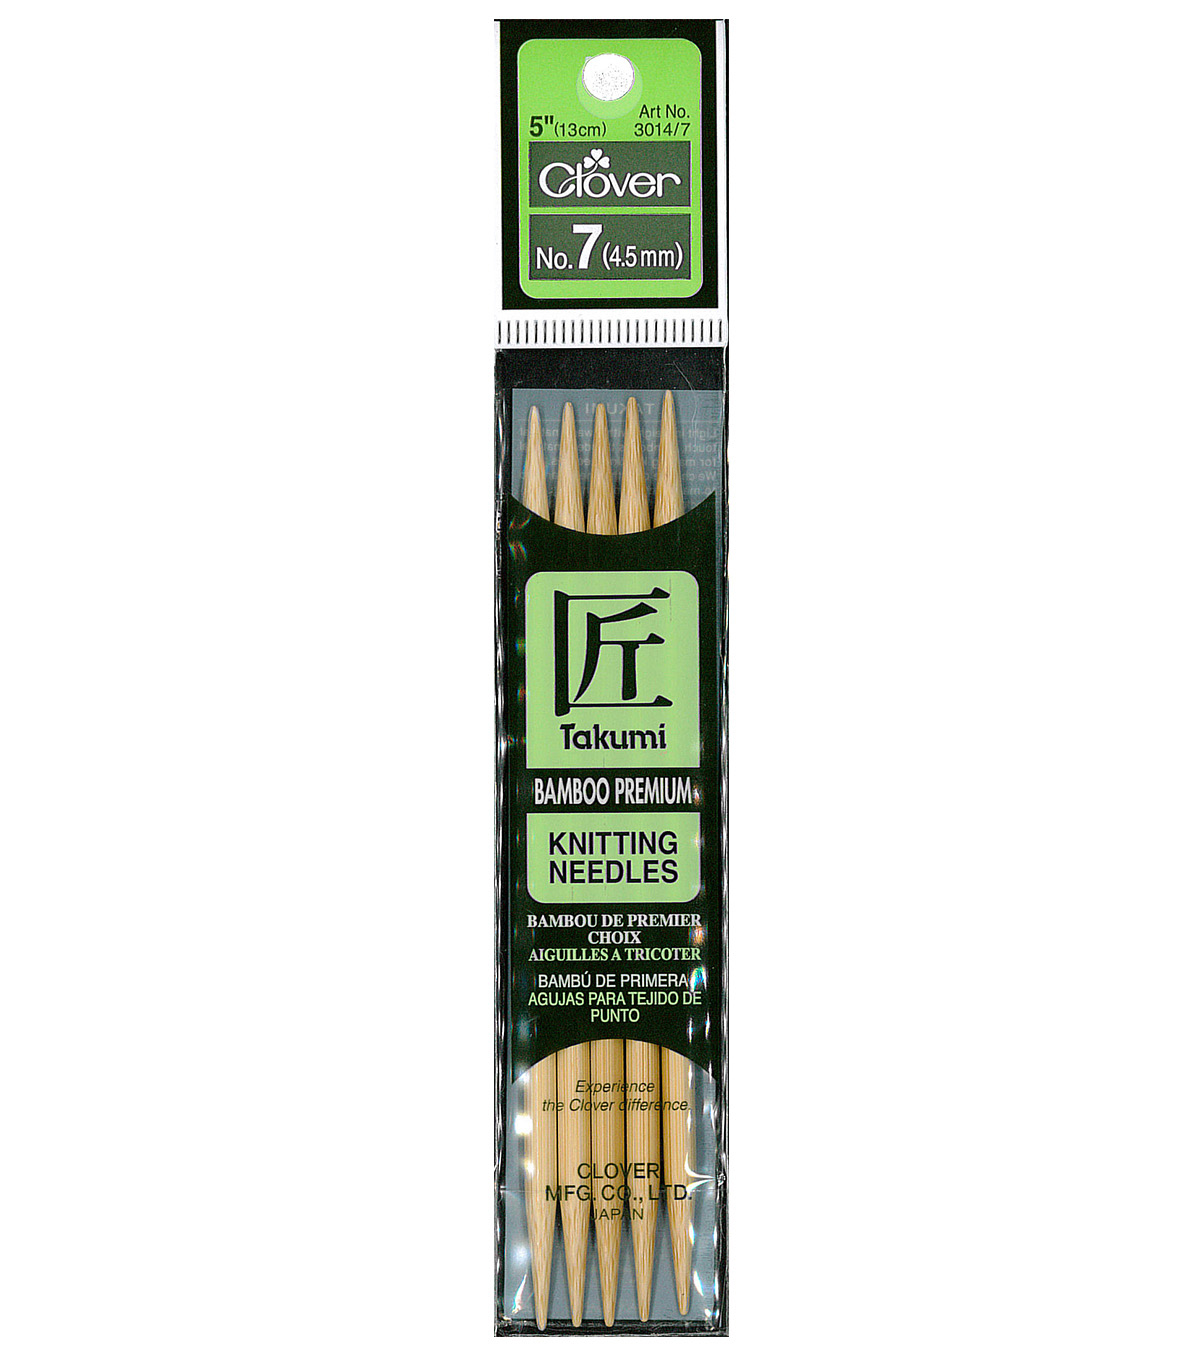 Takumi Bamboo Double Point Knitting Needles 5\u0022 5/Pkg-Size 7/4.5mm